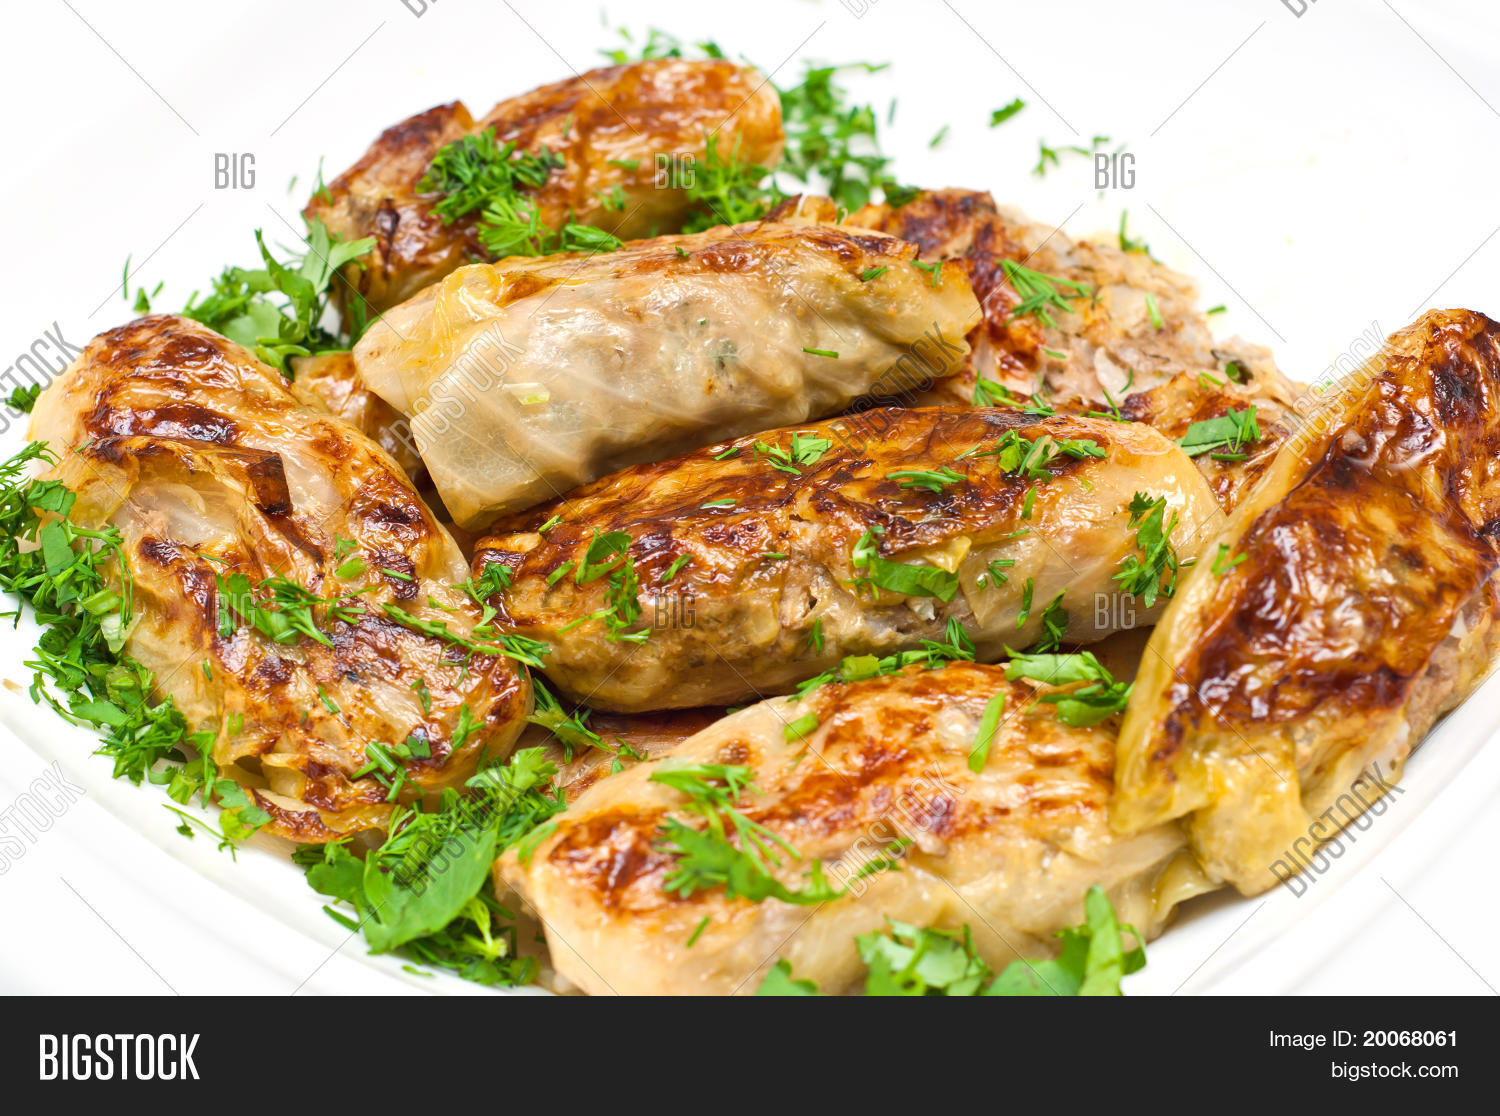 Golubci traditional russian food made from cabbage leaves for Authentic russian cuisine